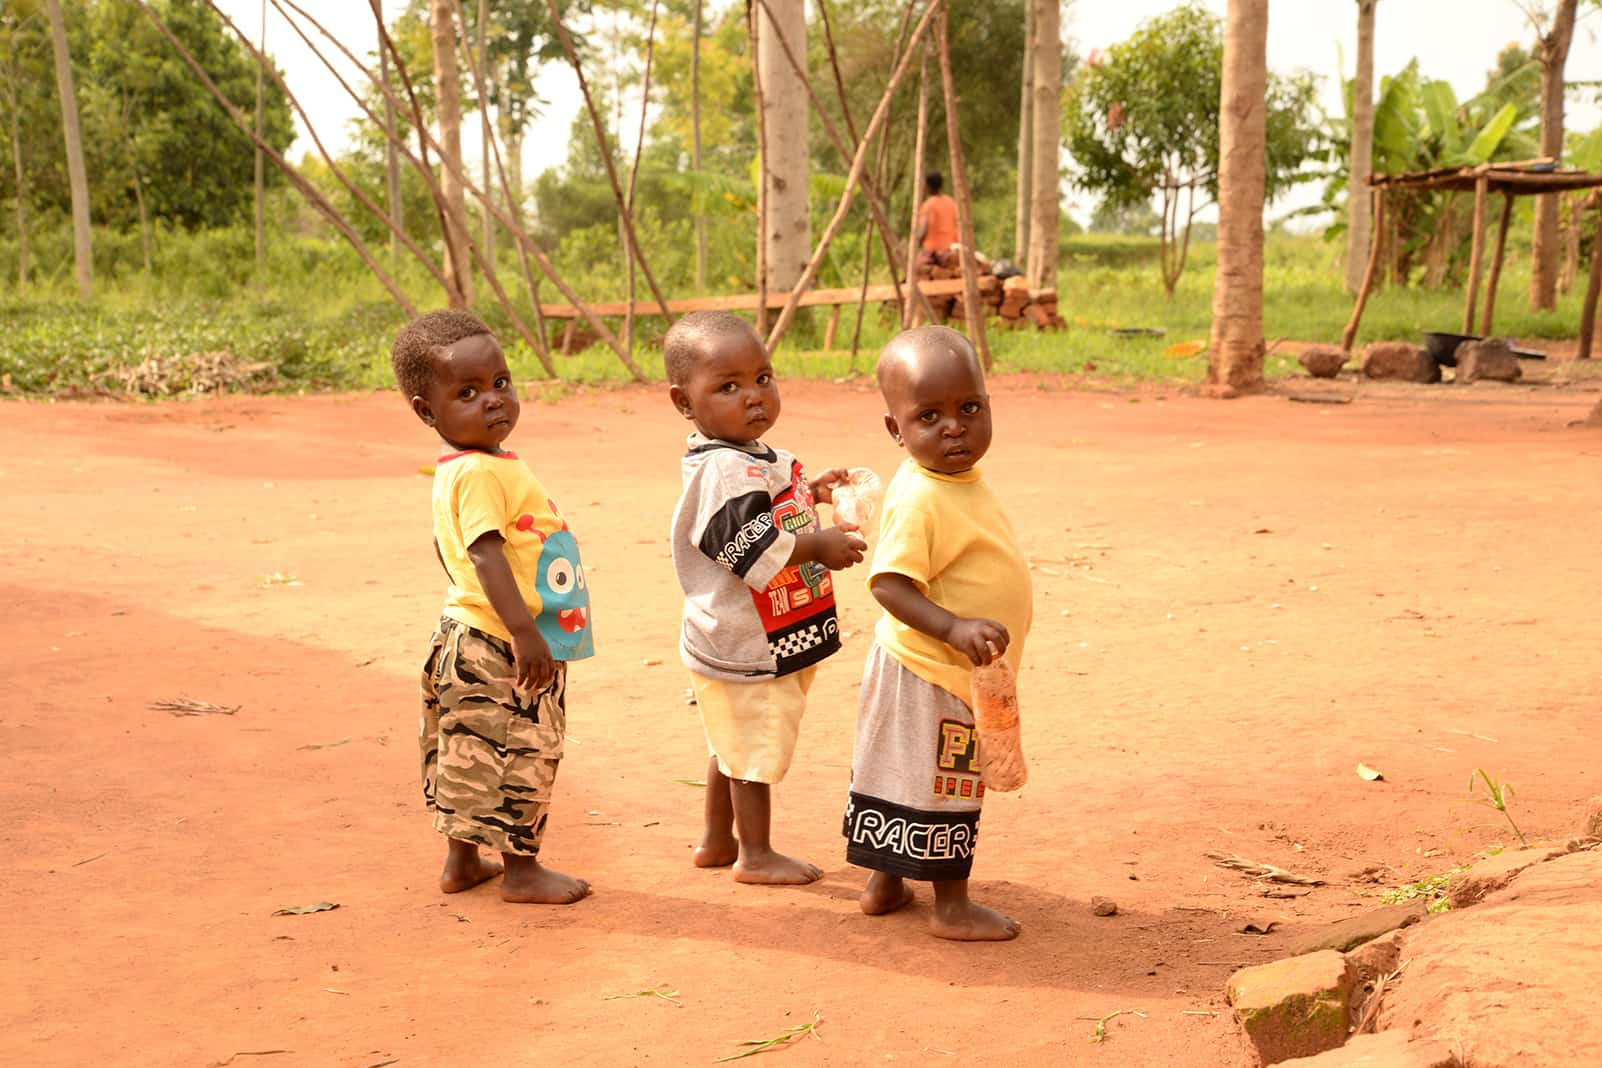 Toddler triplets on a dirt road in Uganda